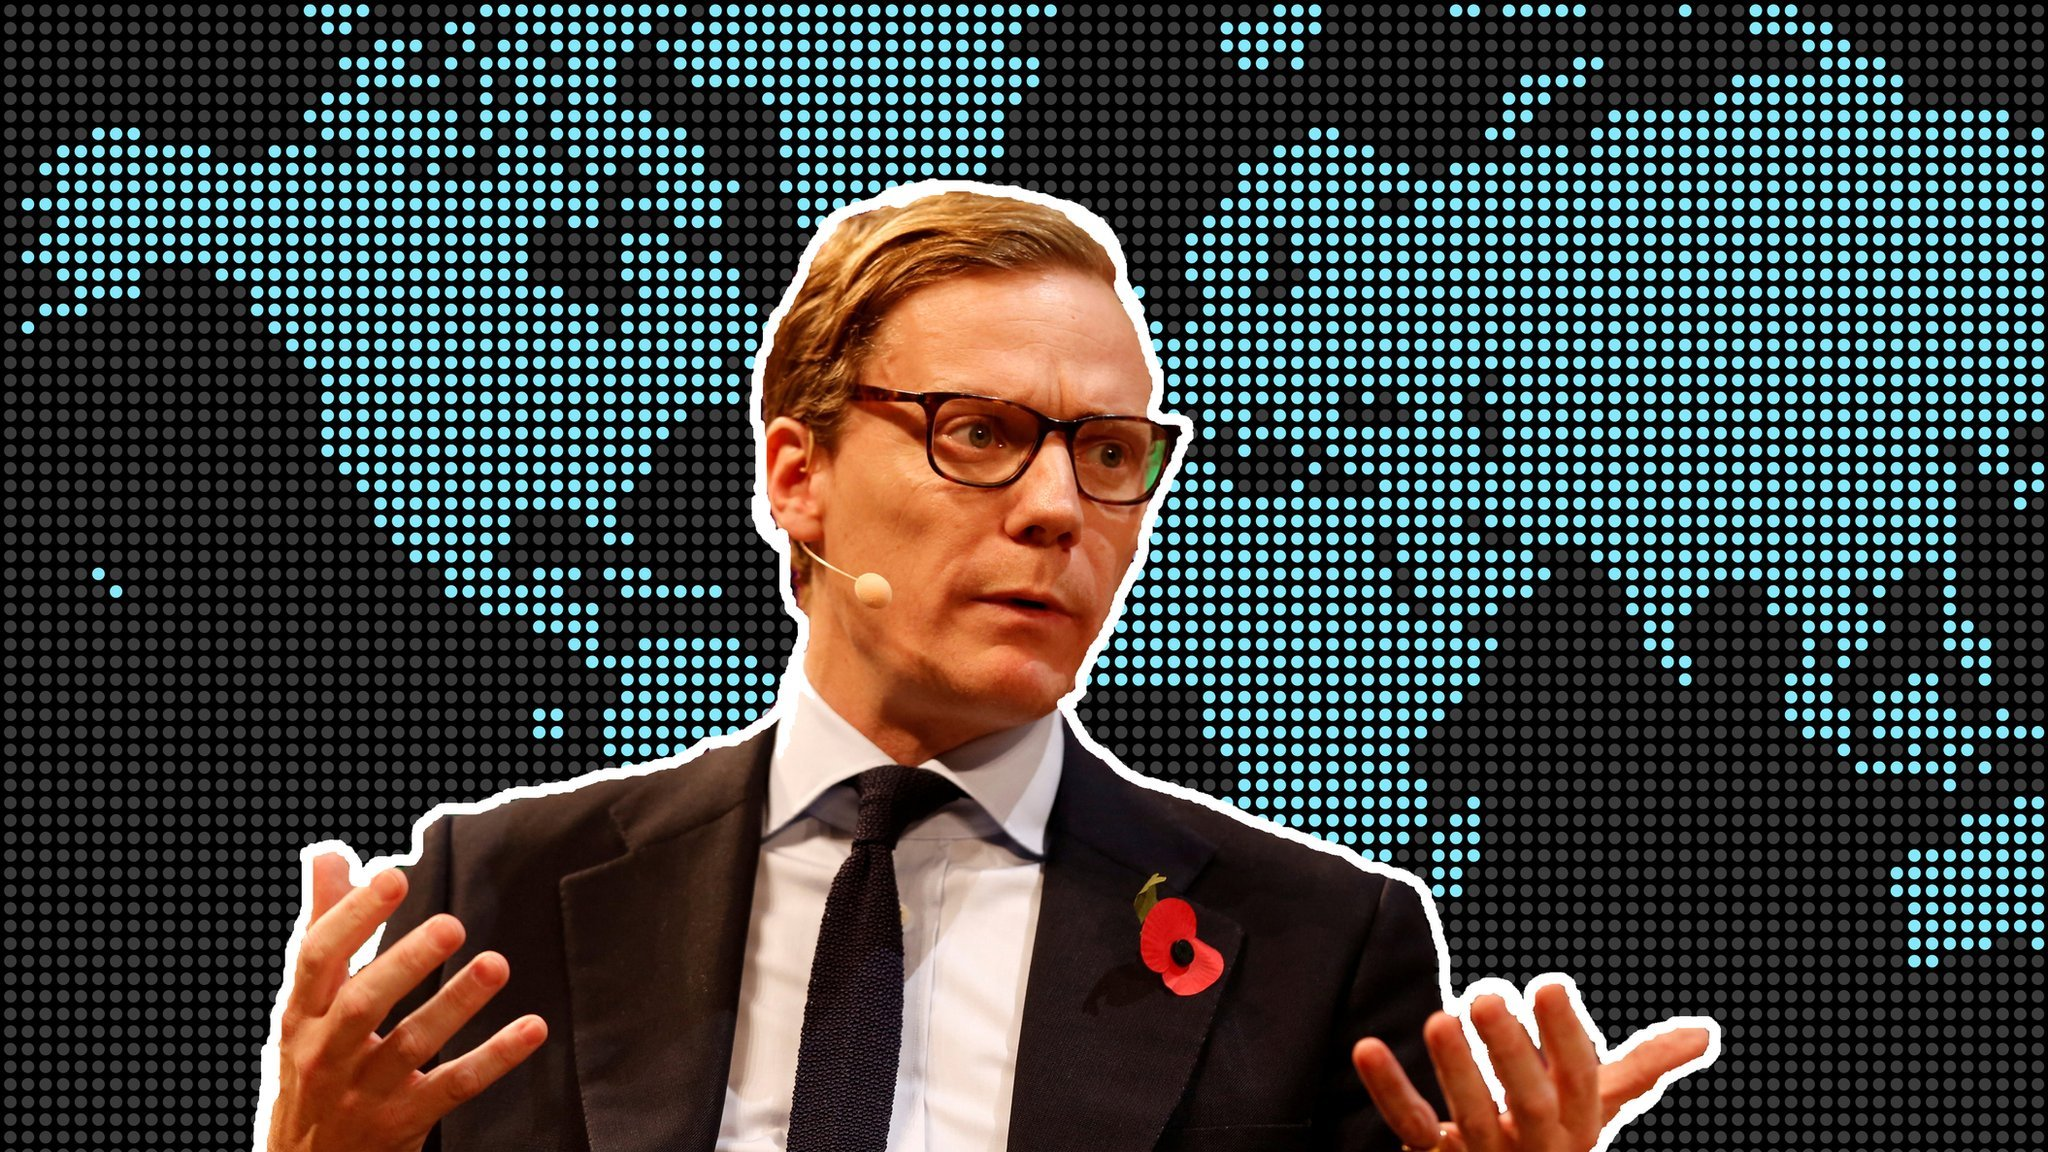 Cambridge Analytica: The data firm's global influence